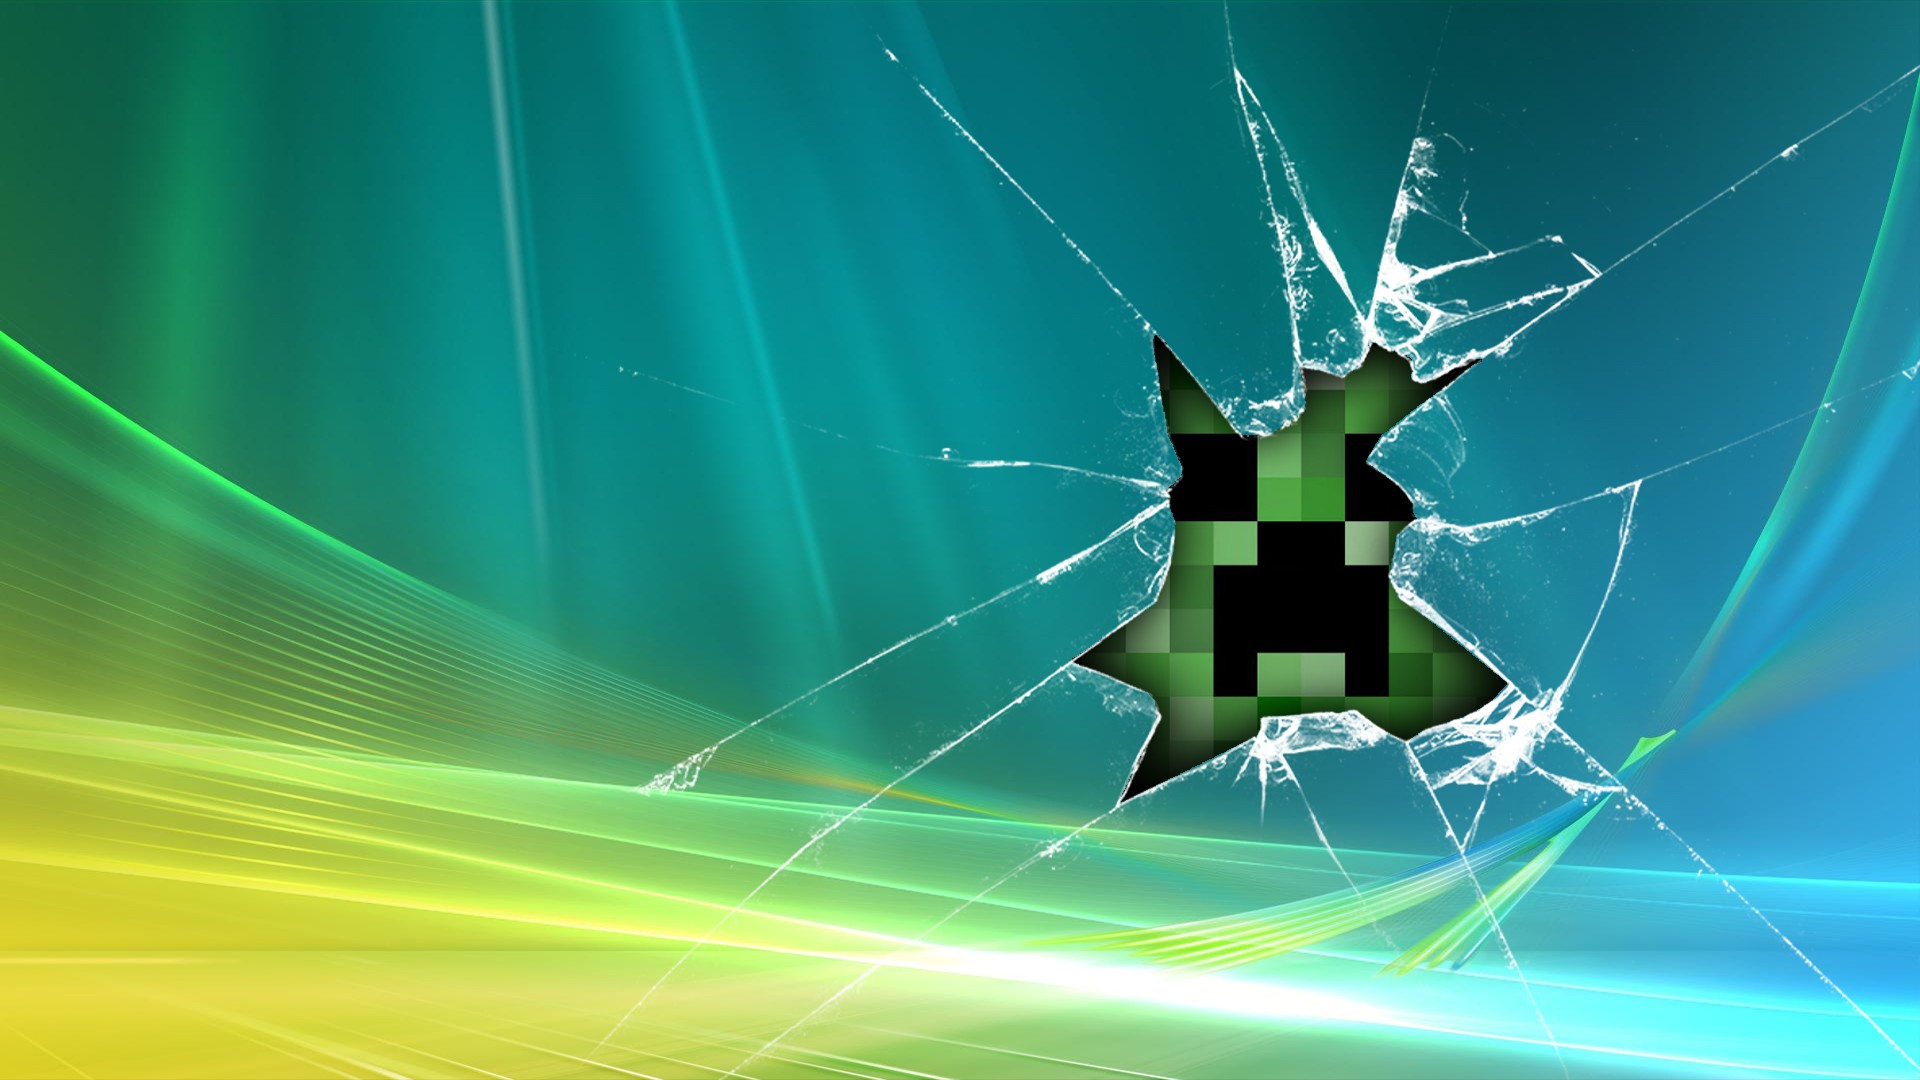 minecraft creeper wallpaper windows